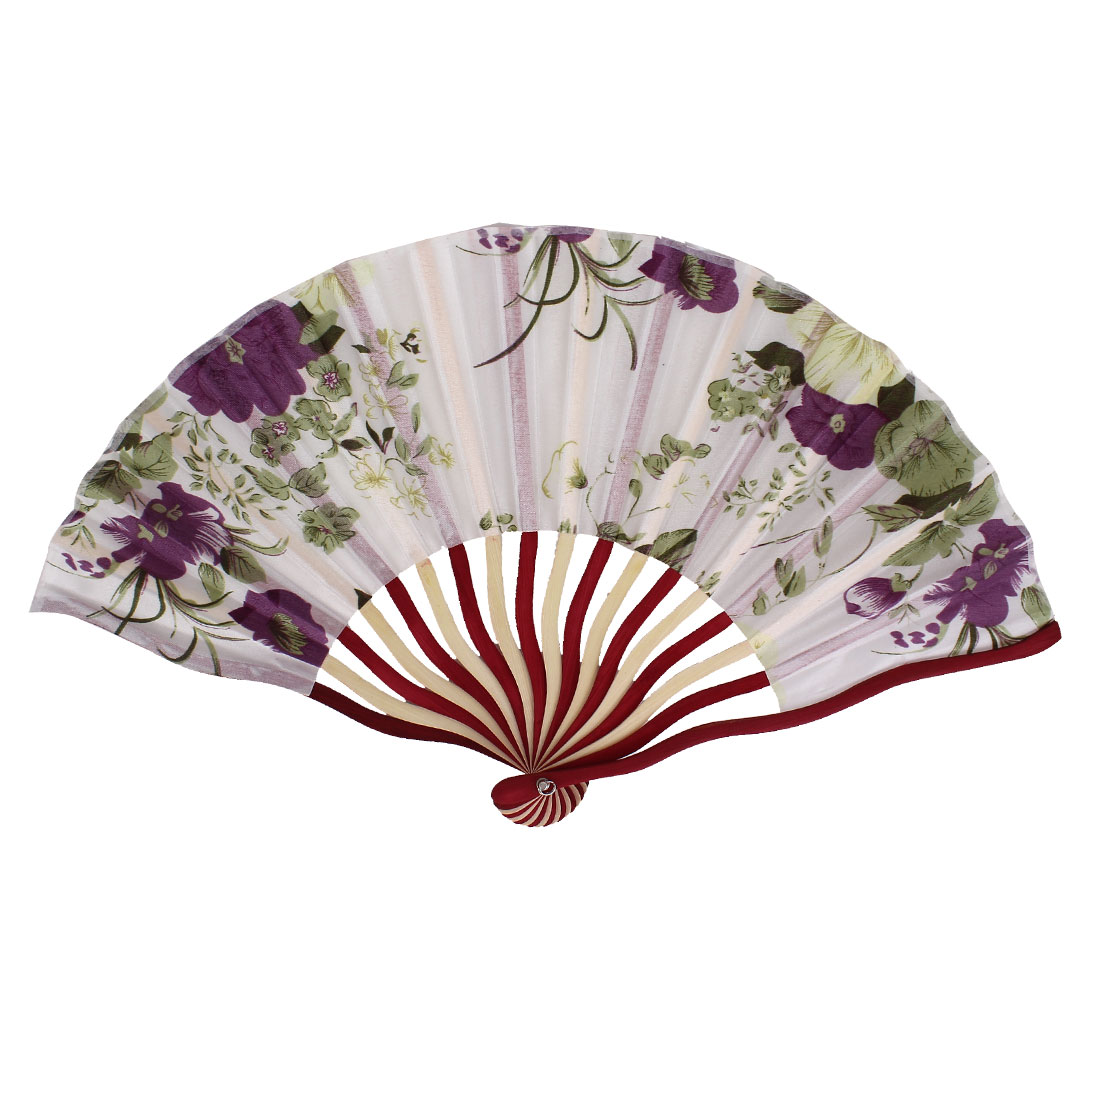 Chinese Tradition Blooming Peony Flower Print Red Bamboo Frame White Fabric Cloth Handheld Collapsible Hand Fan